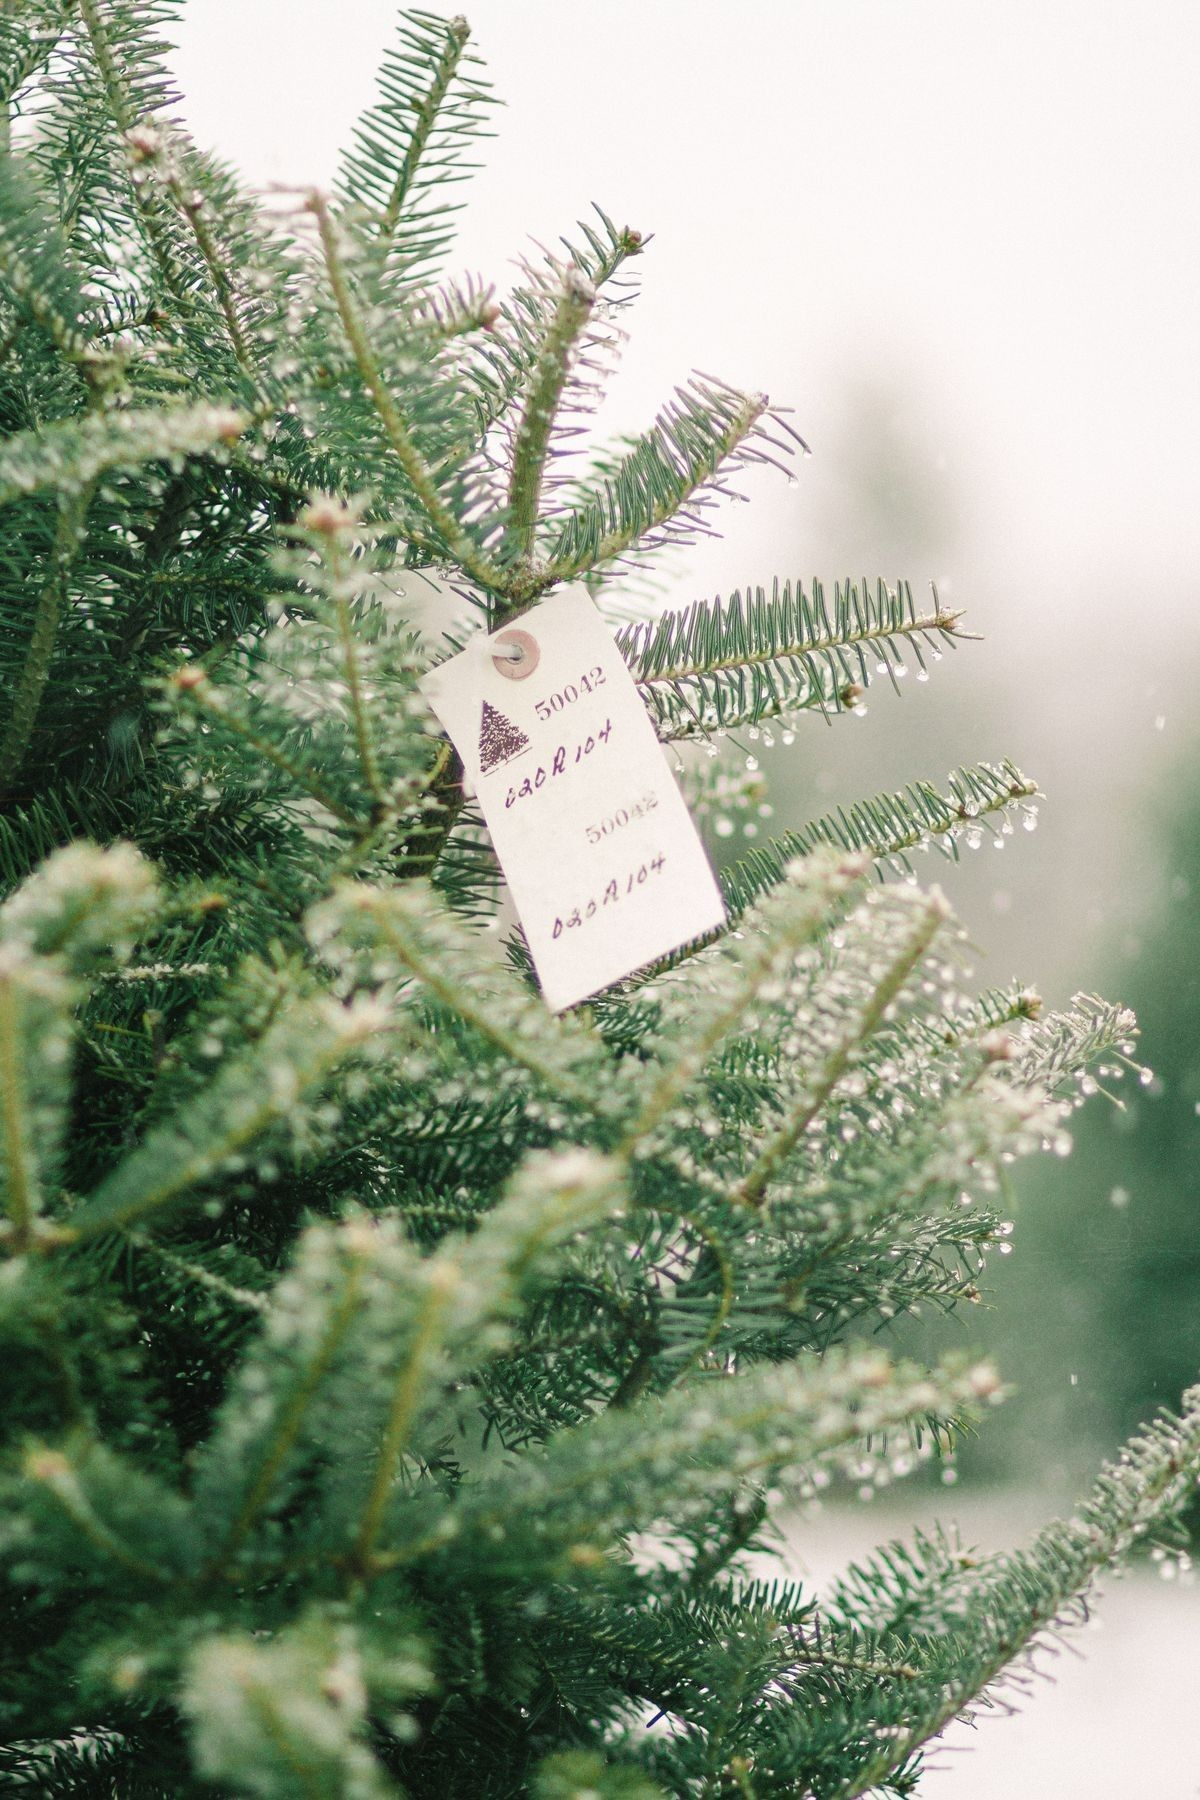 Pin by emily woodard on Bringing Home The Christmas Tree